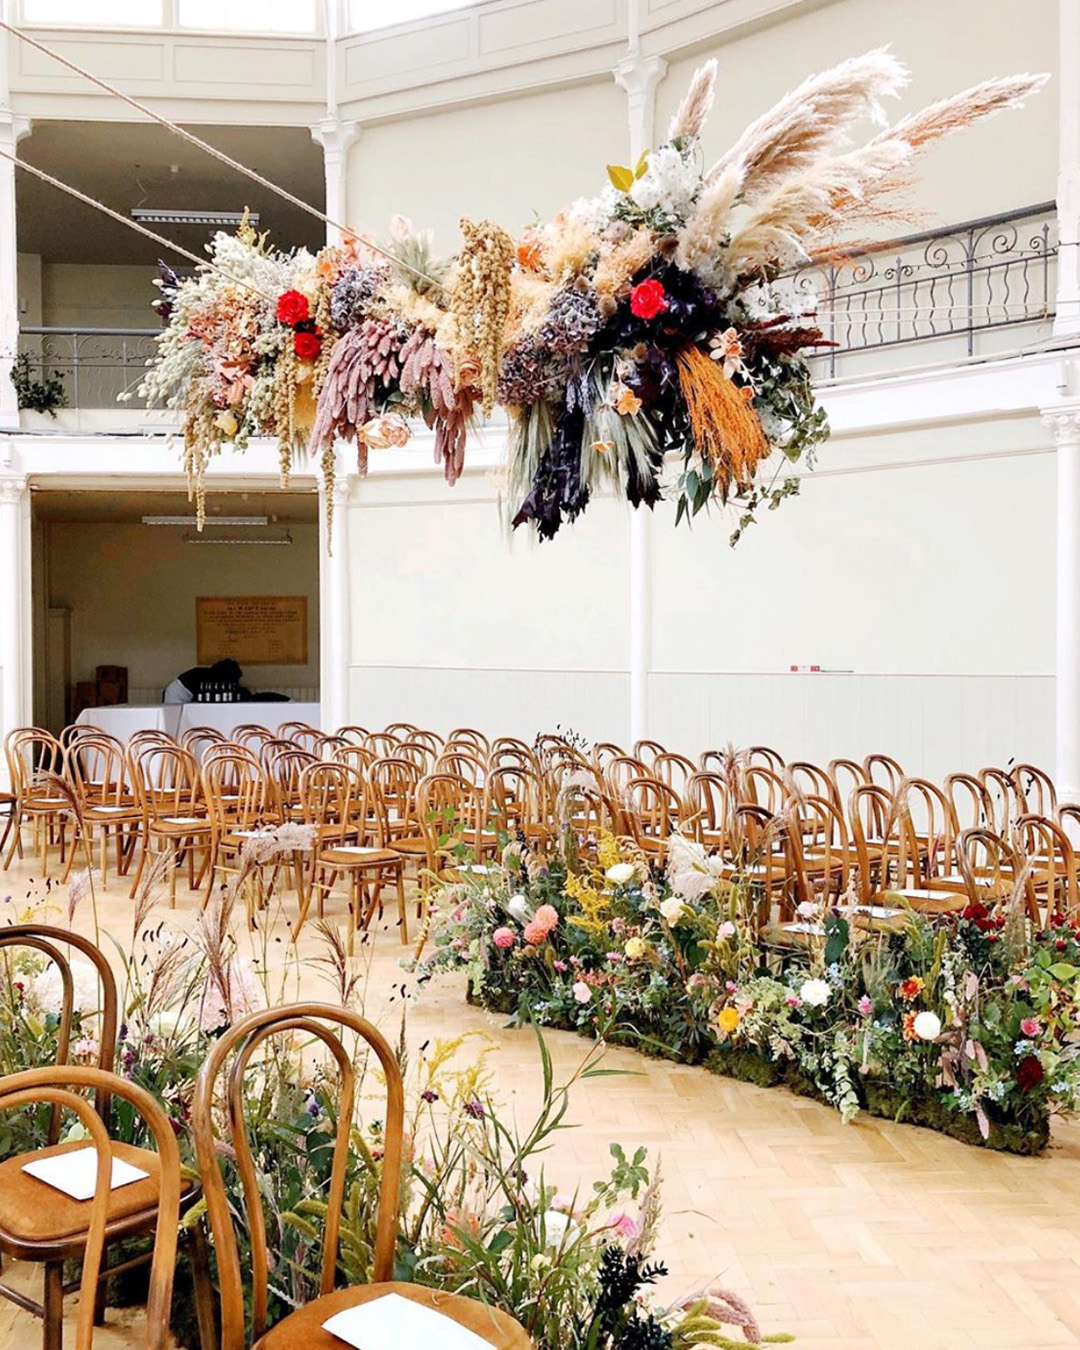 giant hanging flower installation for ceremony aisle